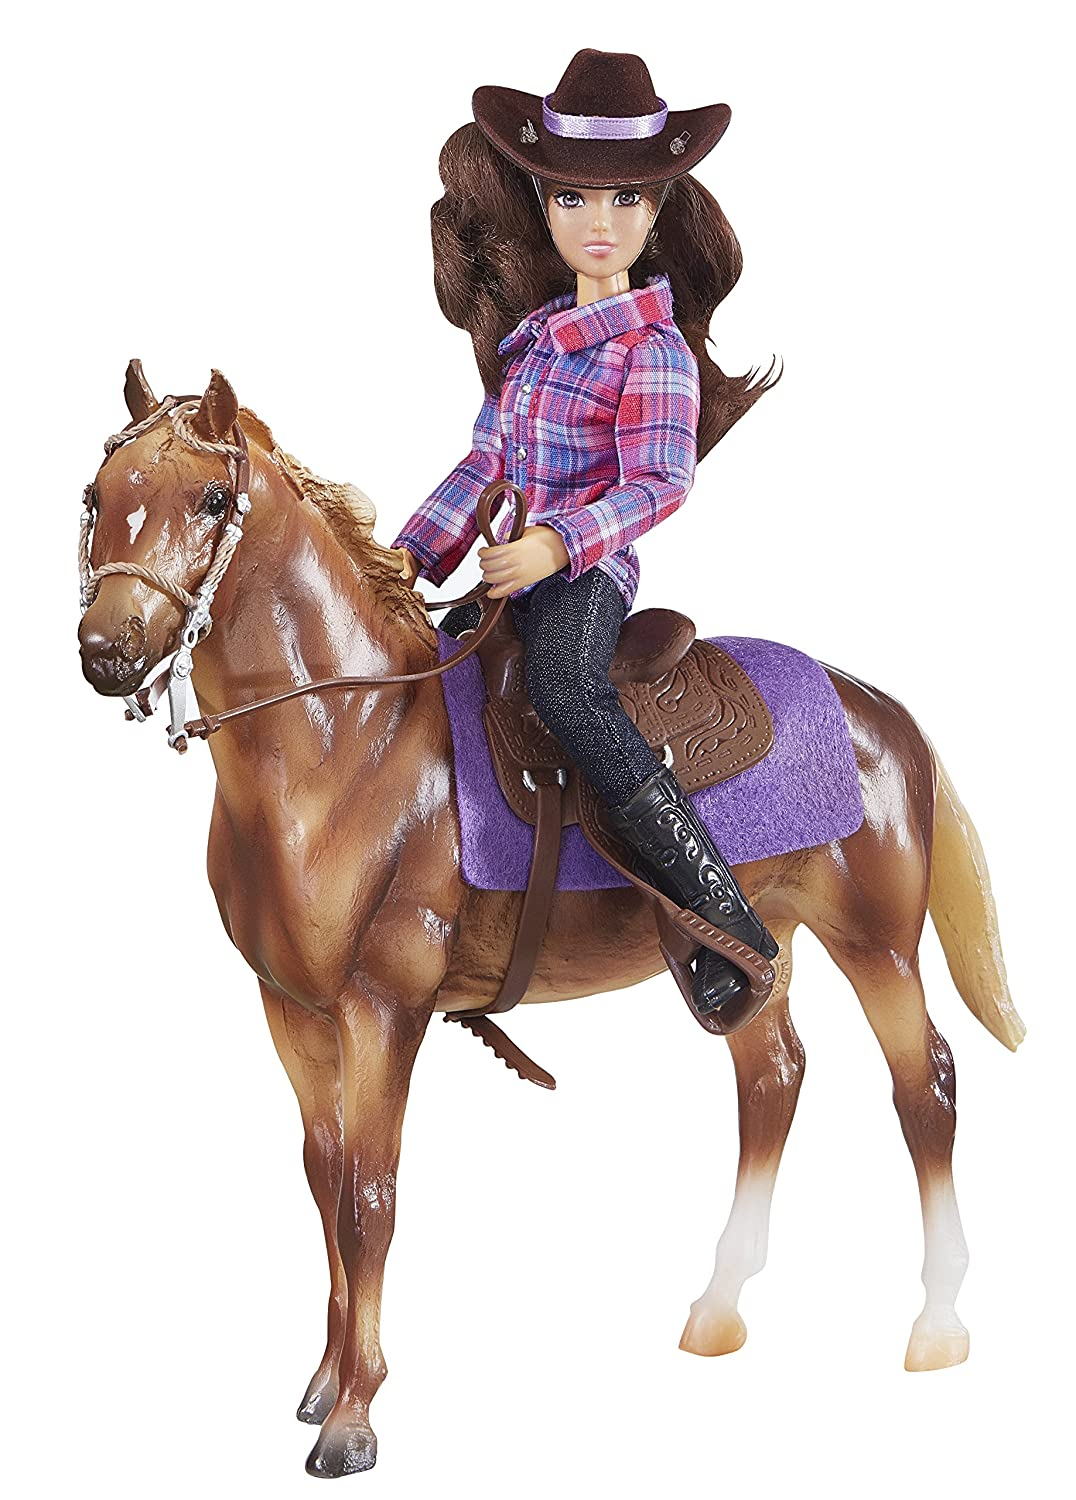 Rider for Breyer Classics Toy Horses 61053 Breyer Model Horses Kaitlyn Cowgirl